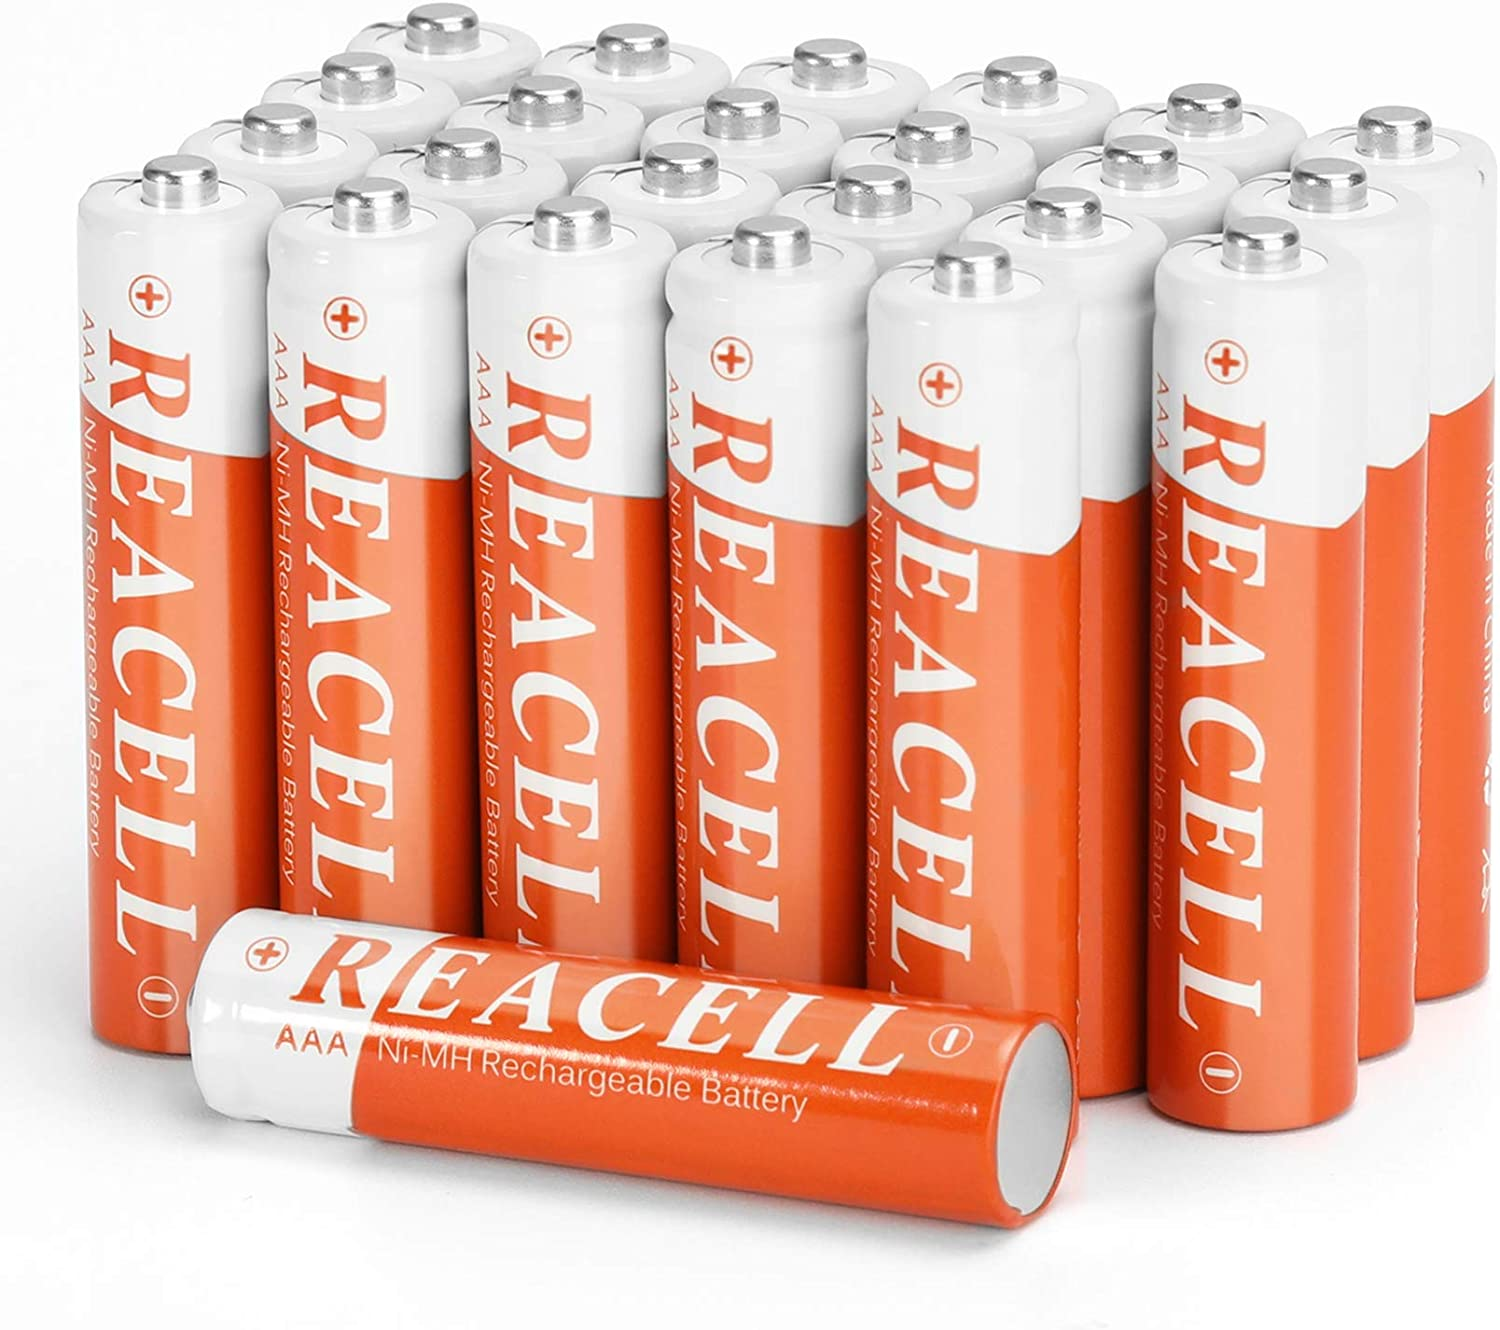 REACELL Solar AAA Finally popular brand Choice Rechargeable Battery Capa 700mAh High Pack 24